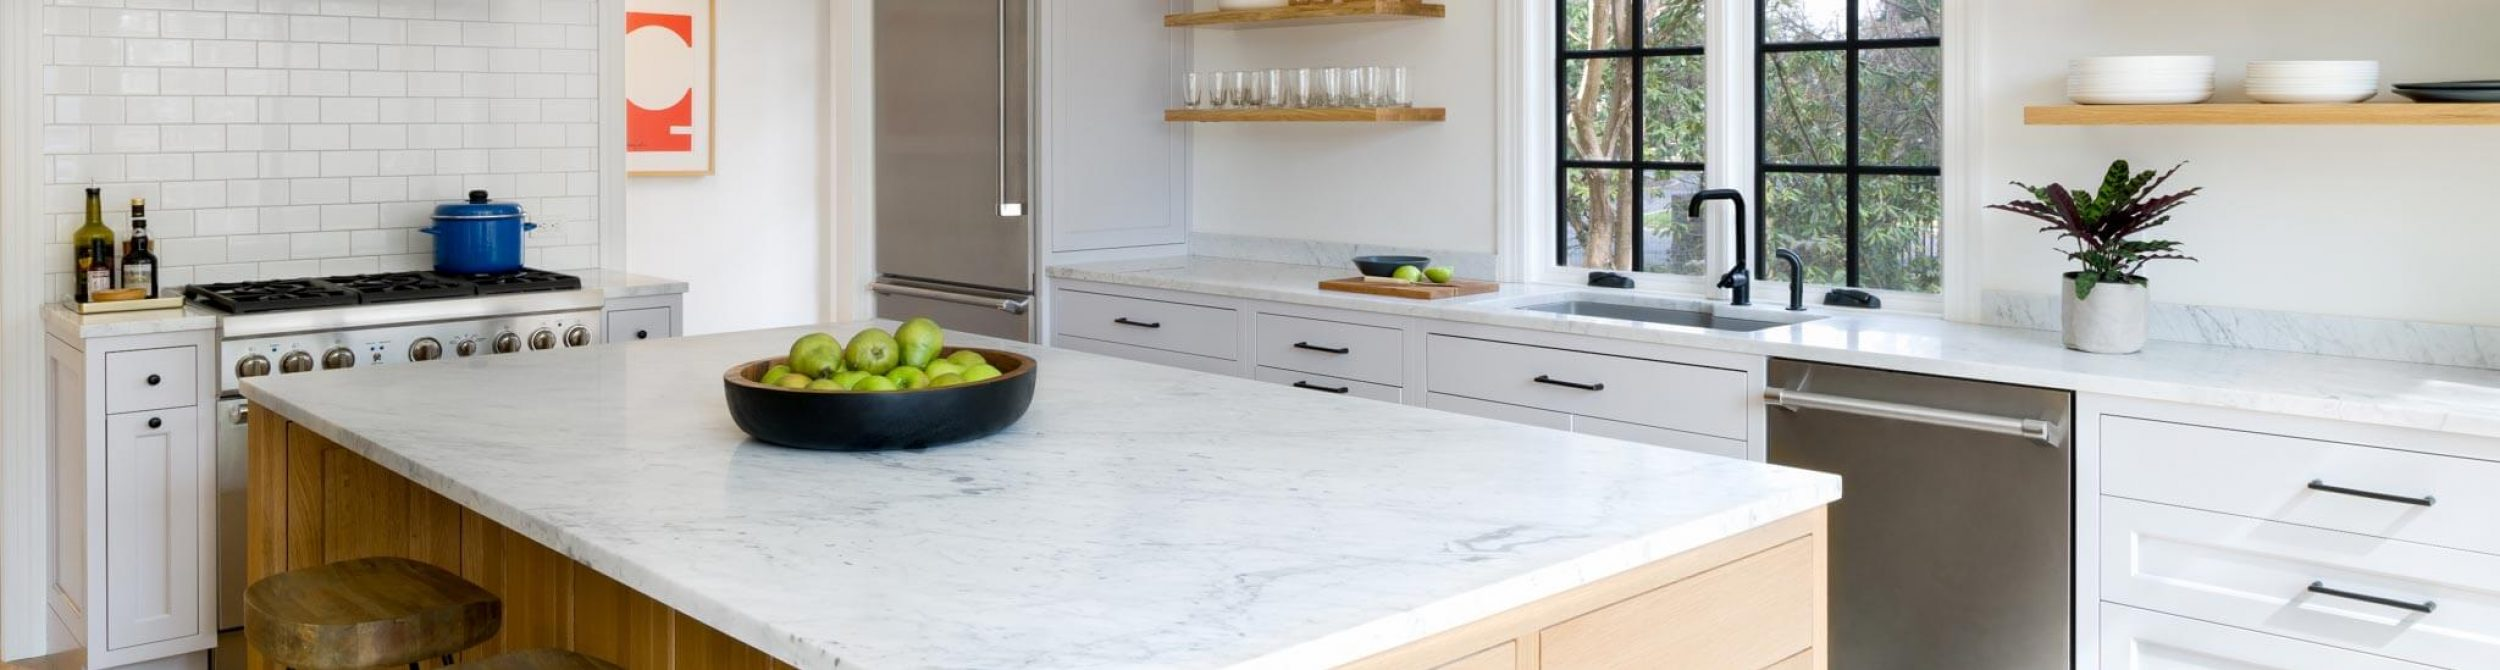 White kitchen with a granite counter top